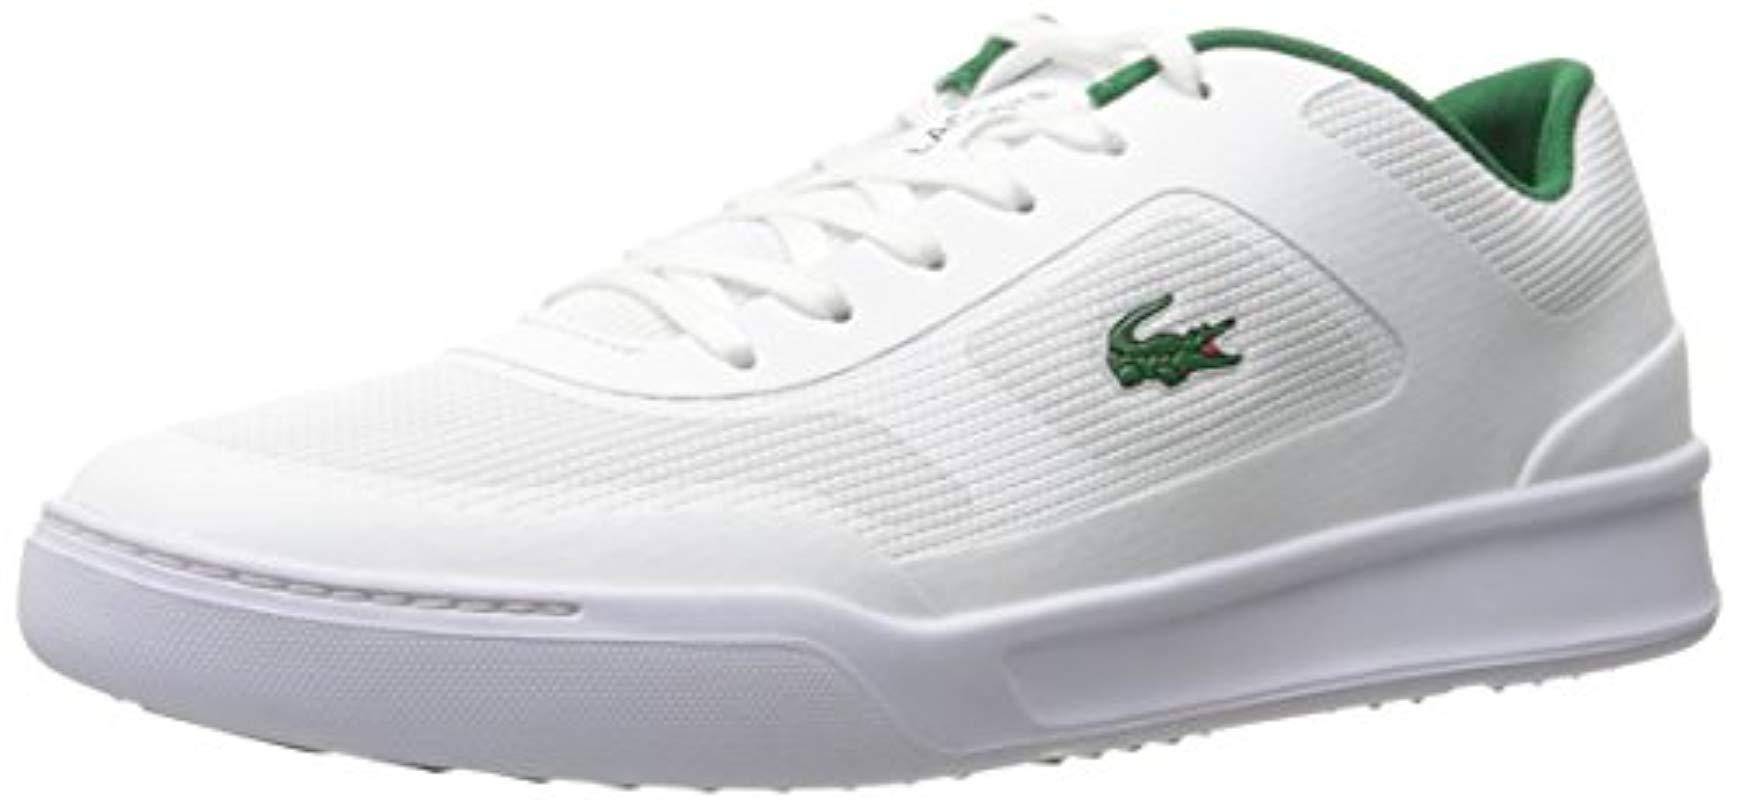 7f712adfb3eaa Lyst - Lacoste Explorateur Sport 117 1 Casual Shoe Fashion Sneaker ...